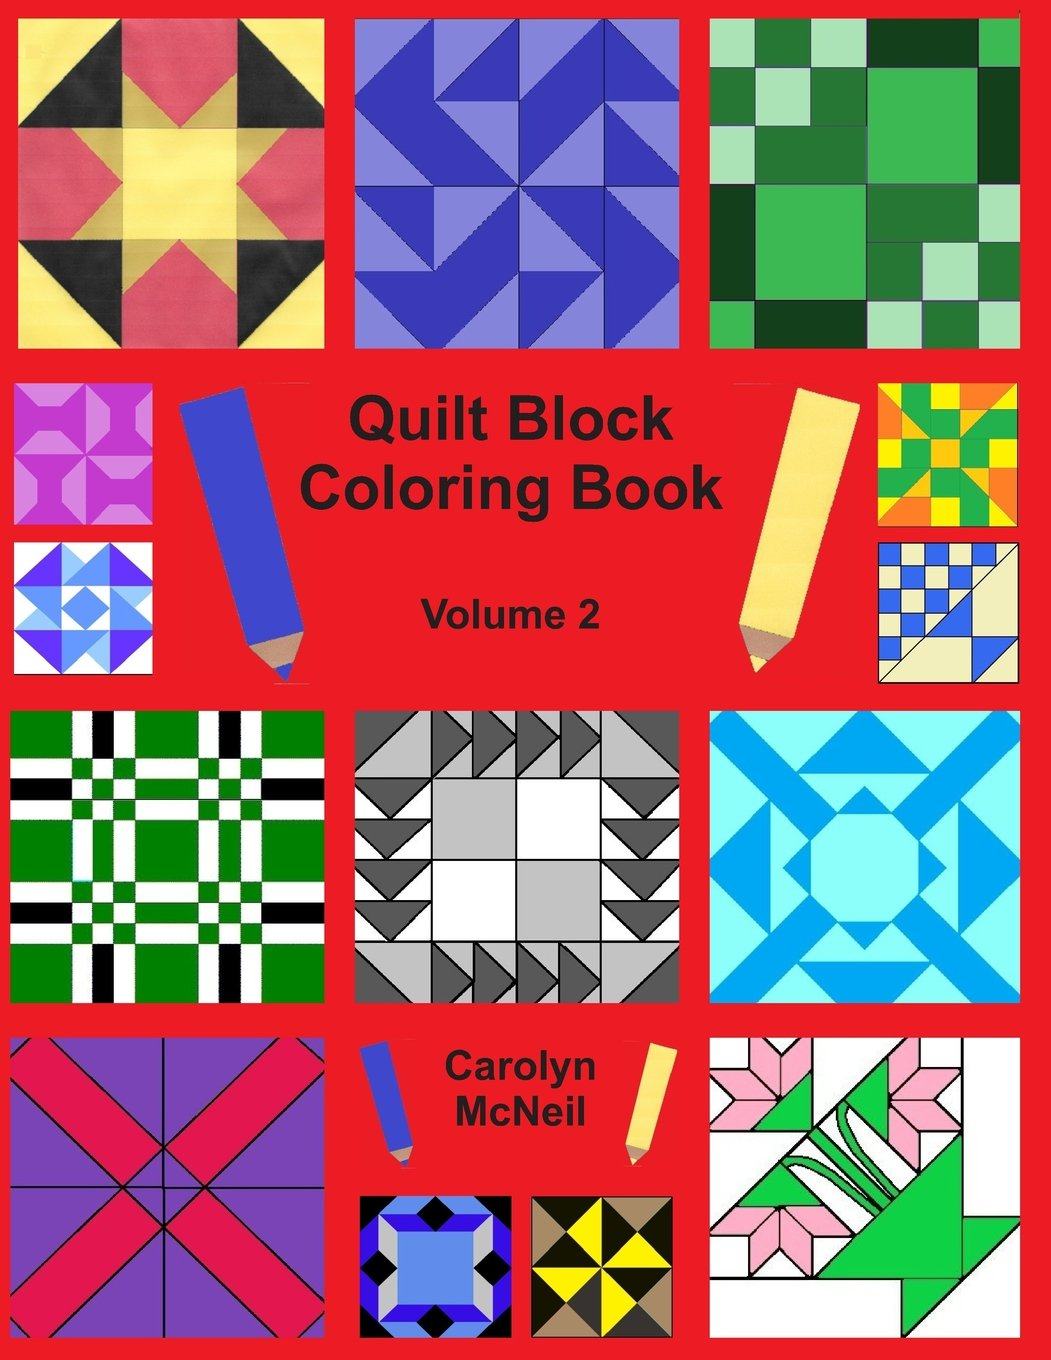 Buy Quilt Block Coloring Book Volume 2 Quilt Block Coloring Books Book Online At Low Prices In India Quilt Block Coloring Book Volume 2 Quilt Block Coloring Books Reviews Ratings Amazon In